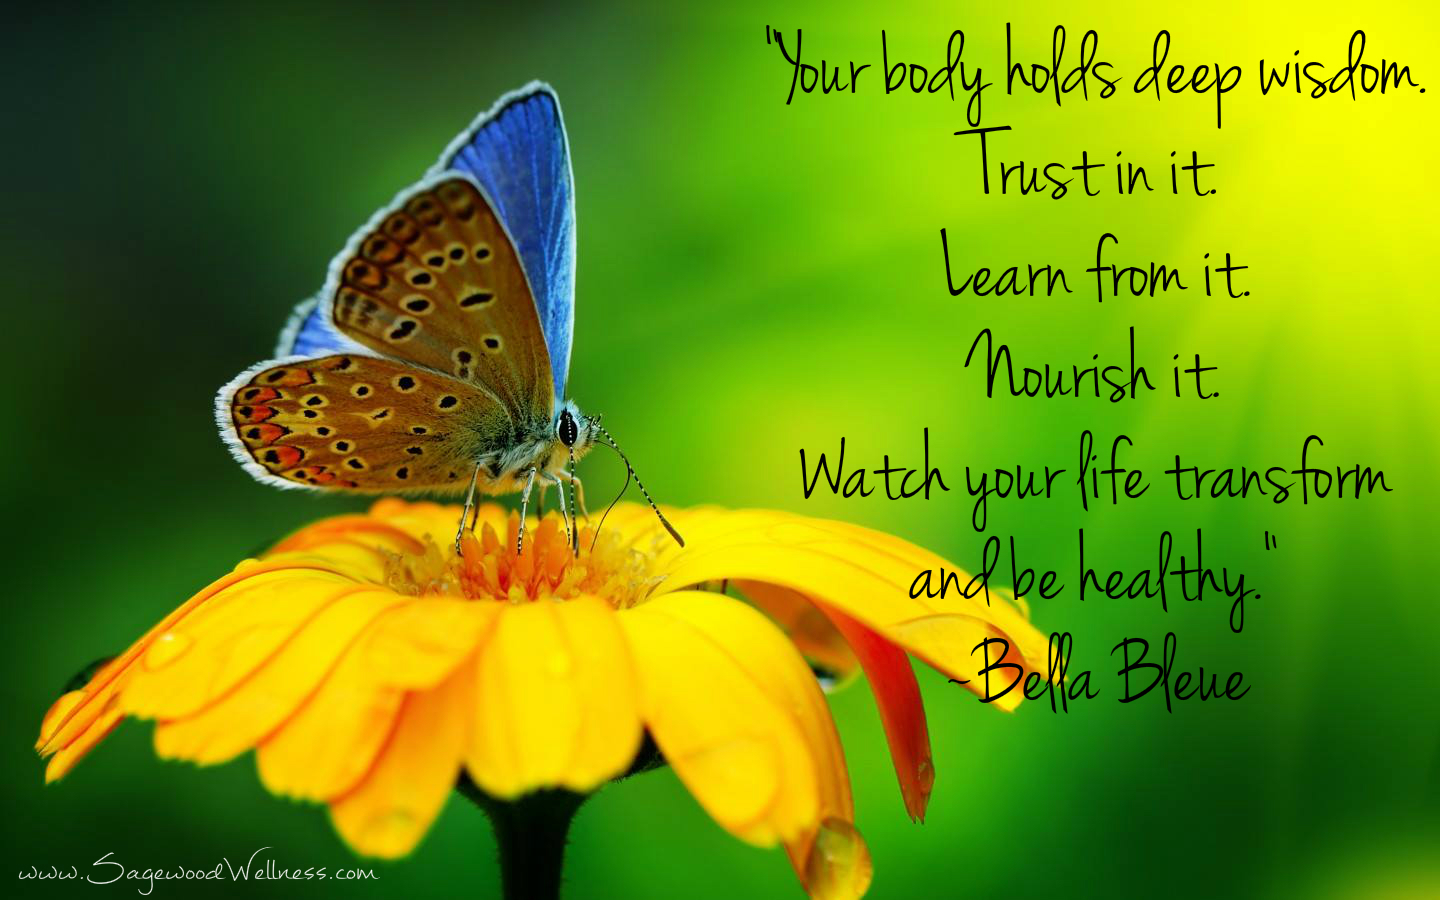 Hd Inspirational Health And Wellness Quotes On Top - Nature Flowers And Butterflies - HD Wallpaper